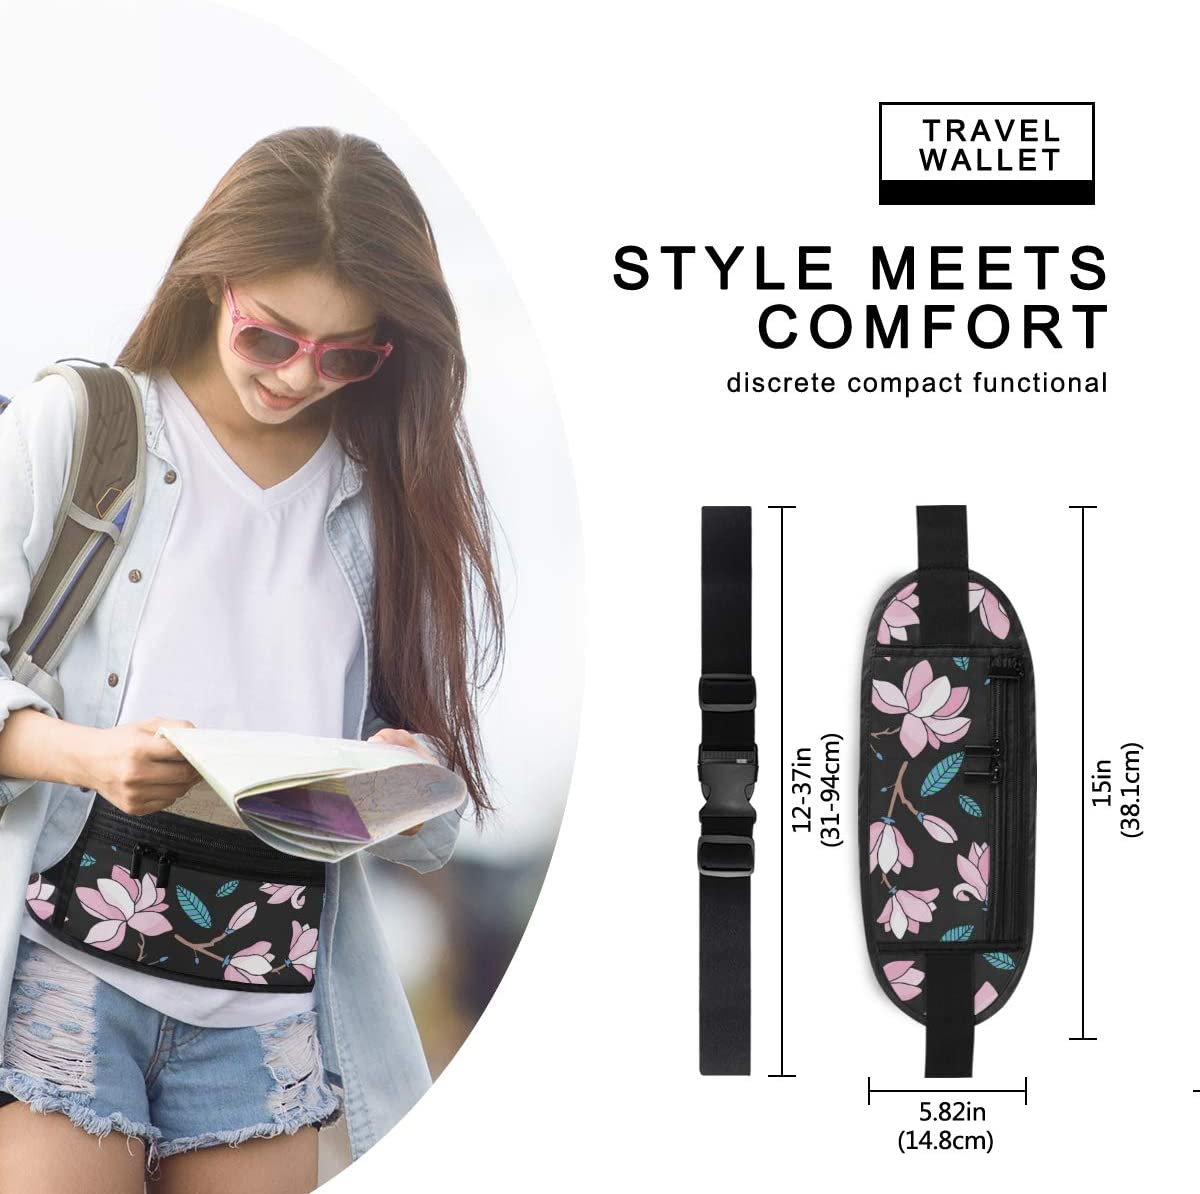 Travel Waist Pack,travel Pocket With Adjustable Belt Pattern Blossoming Magnolia Flowers Running Lumbar Pack For Travel Outdoor Sports Walking